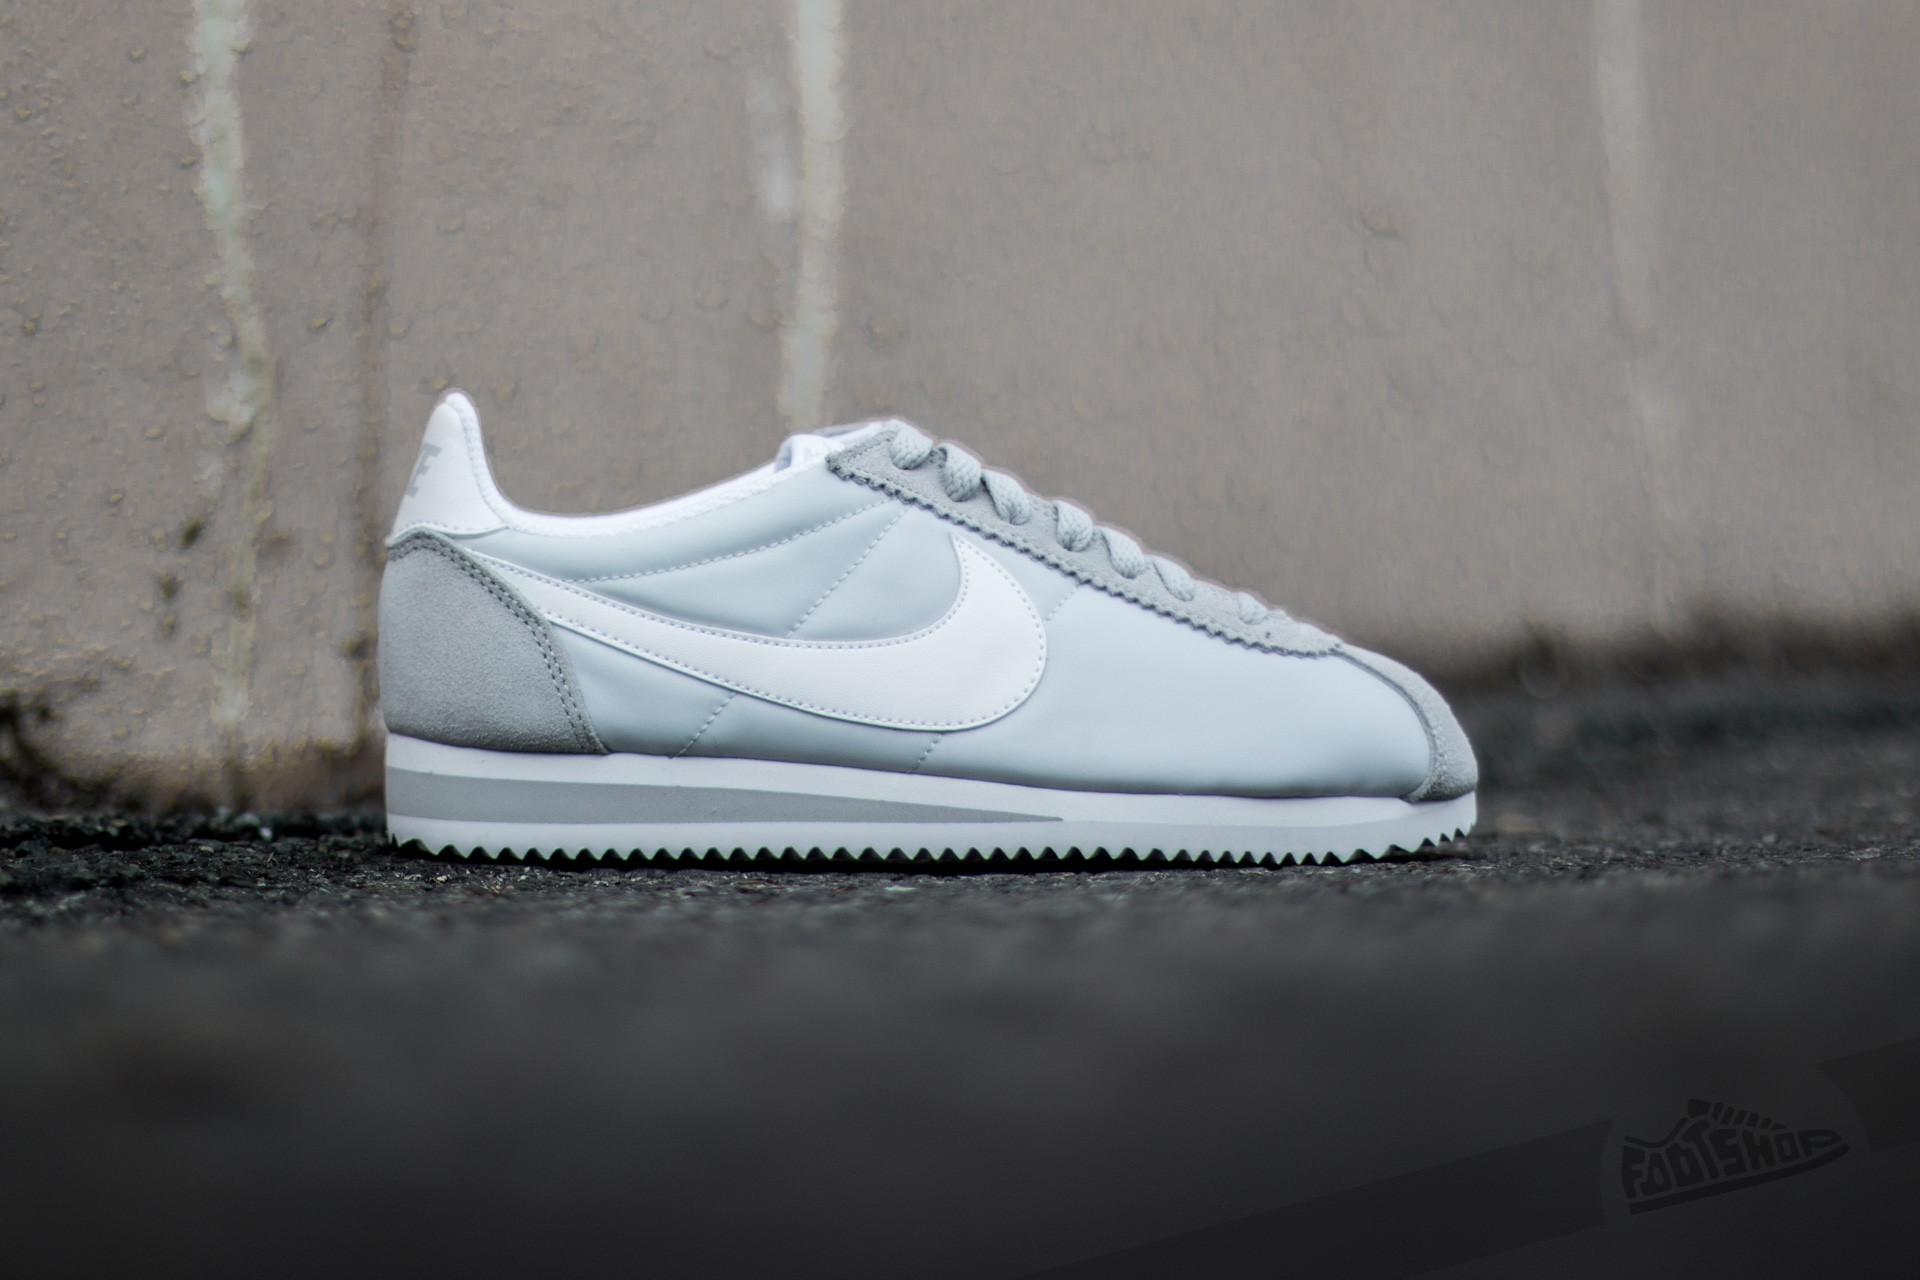 outlet store b3d87 b794c Nike Wmns Classic Cortez Nylon Pure Platinum White at a great price £67 buy